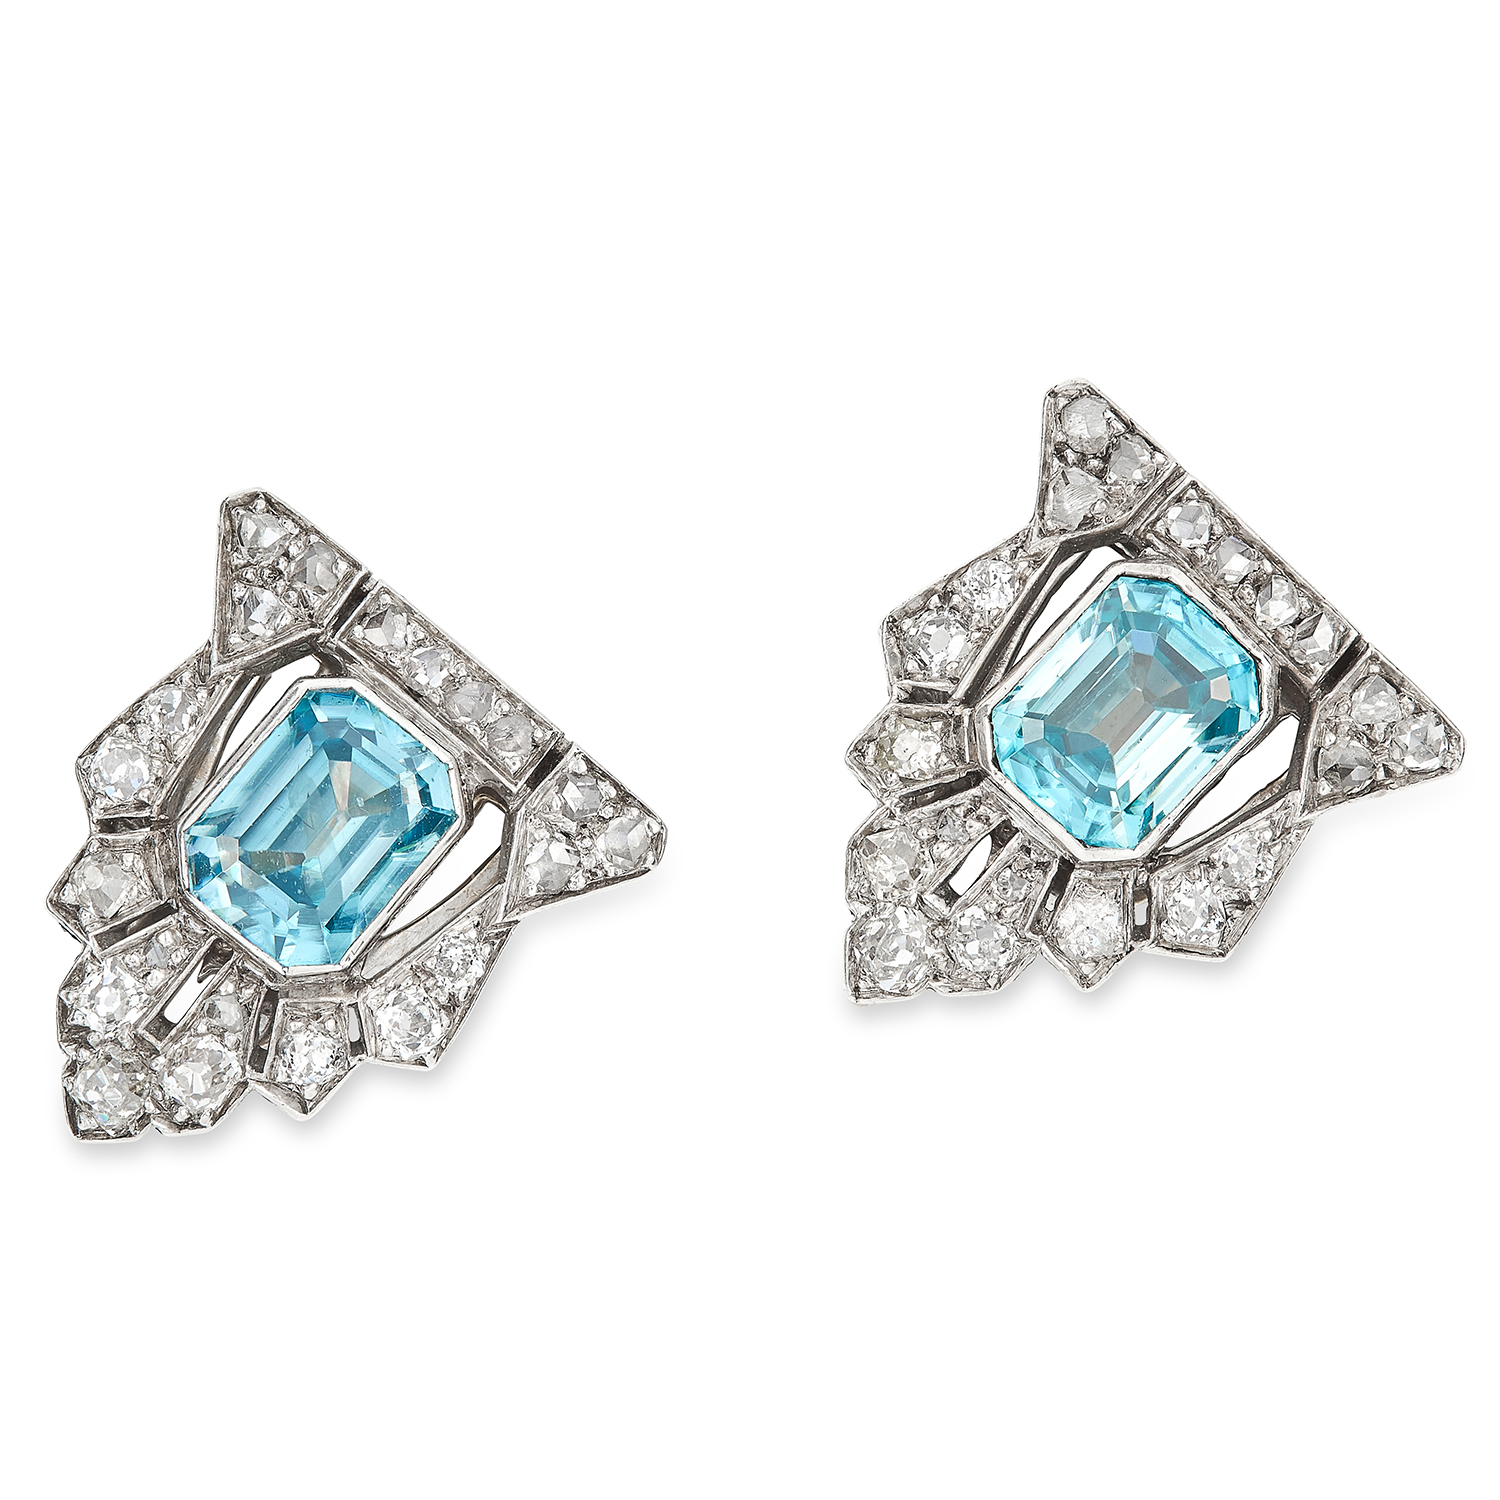 ANTIQUE ART DECO BLUE ZIRCON AND DIAMOND CLIPS in 18ct white gold or platinum, each set with an